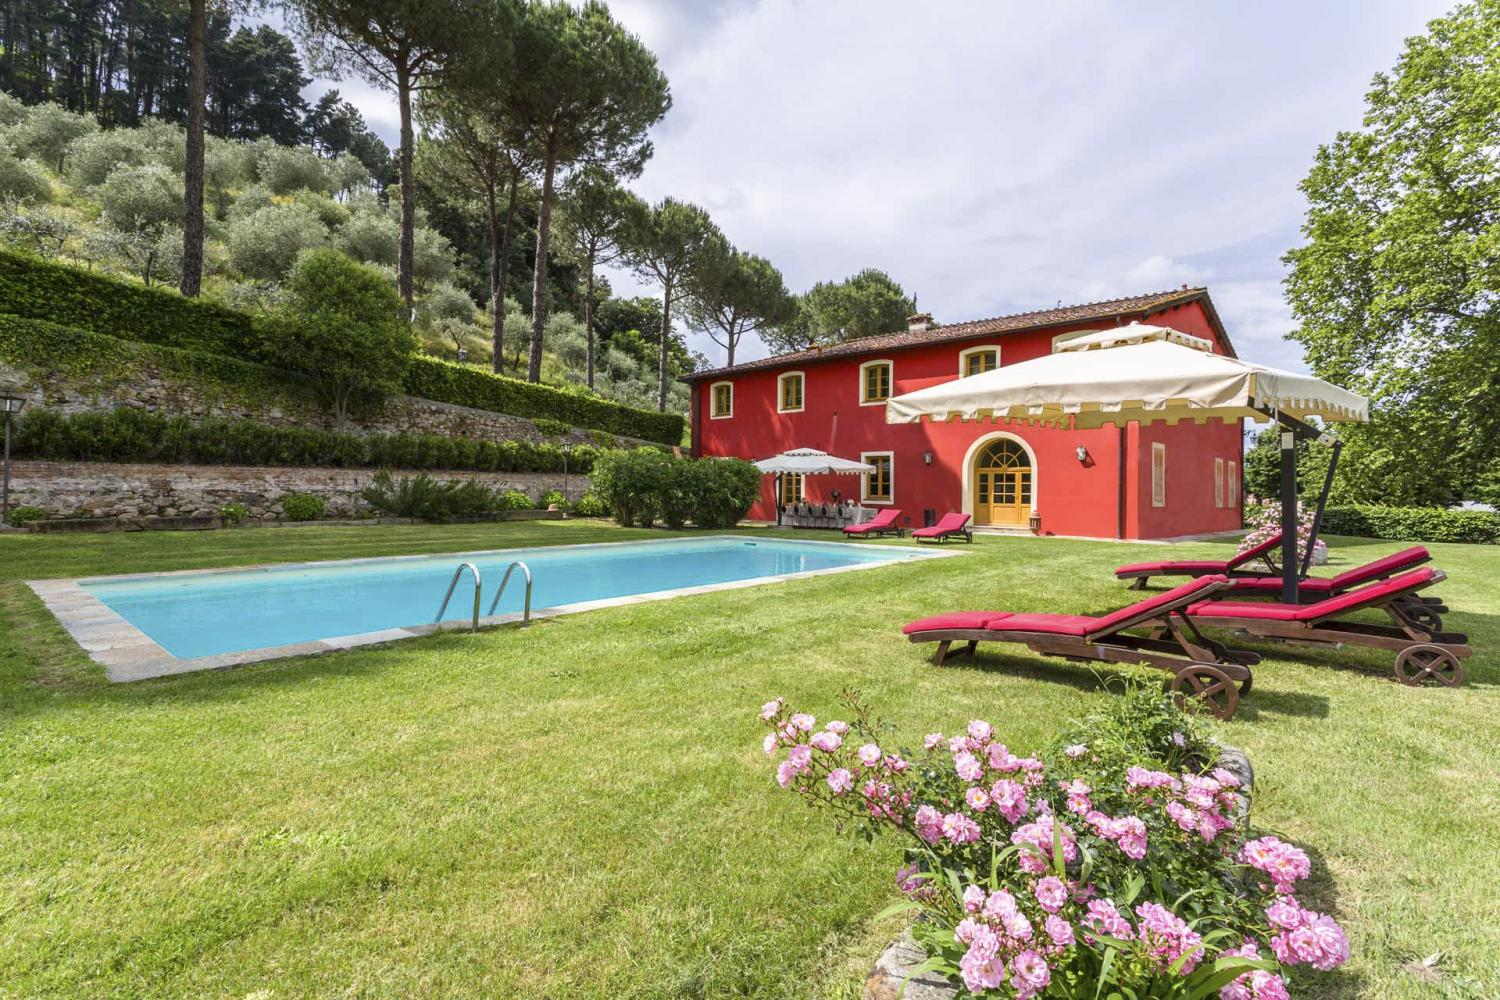 Swimming pool of Lucca villa in Tuscany